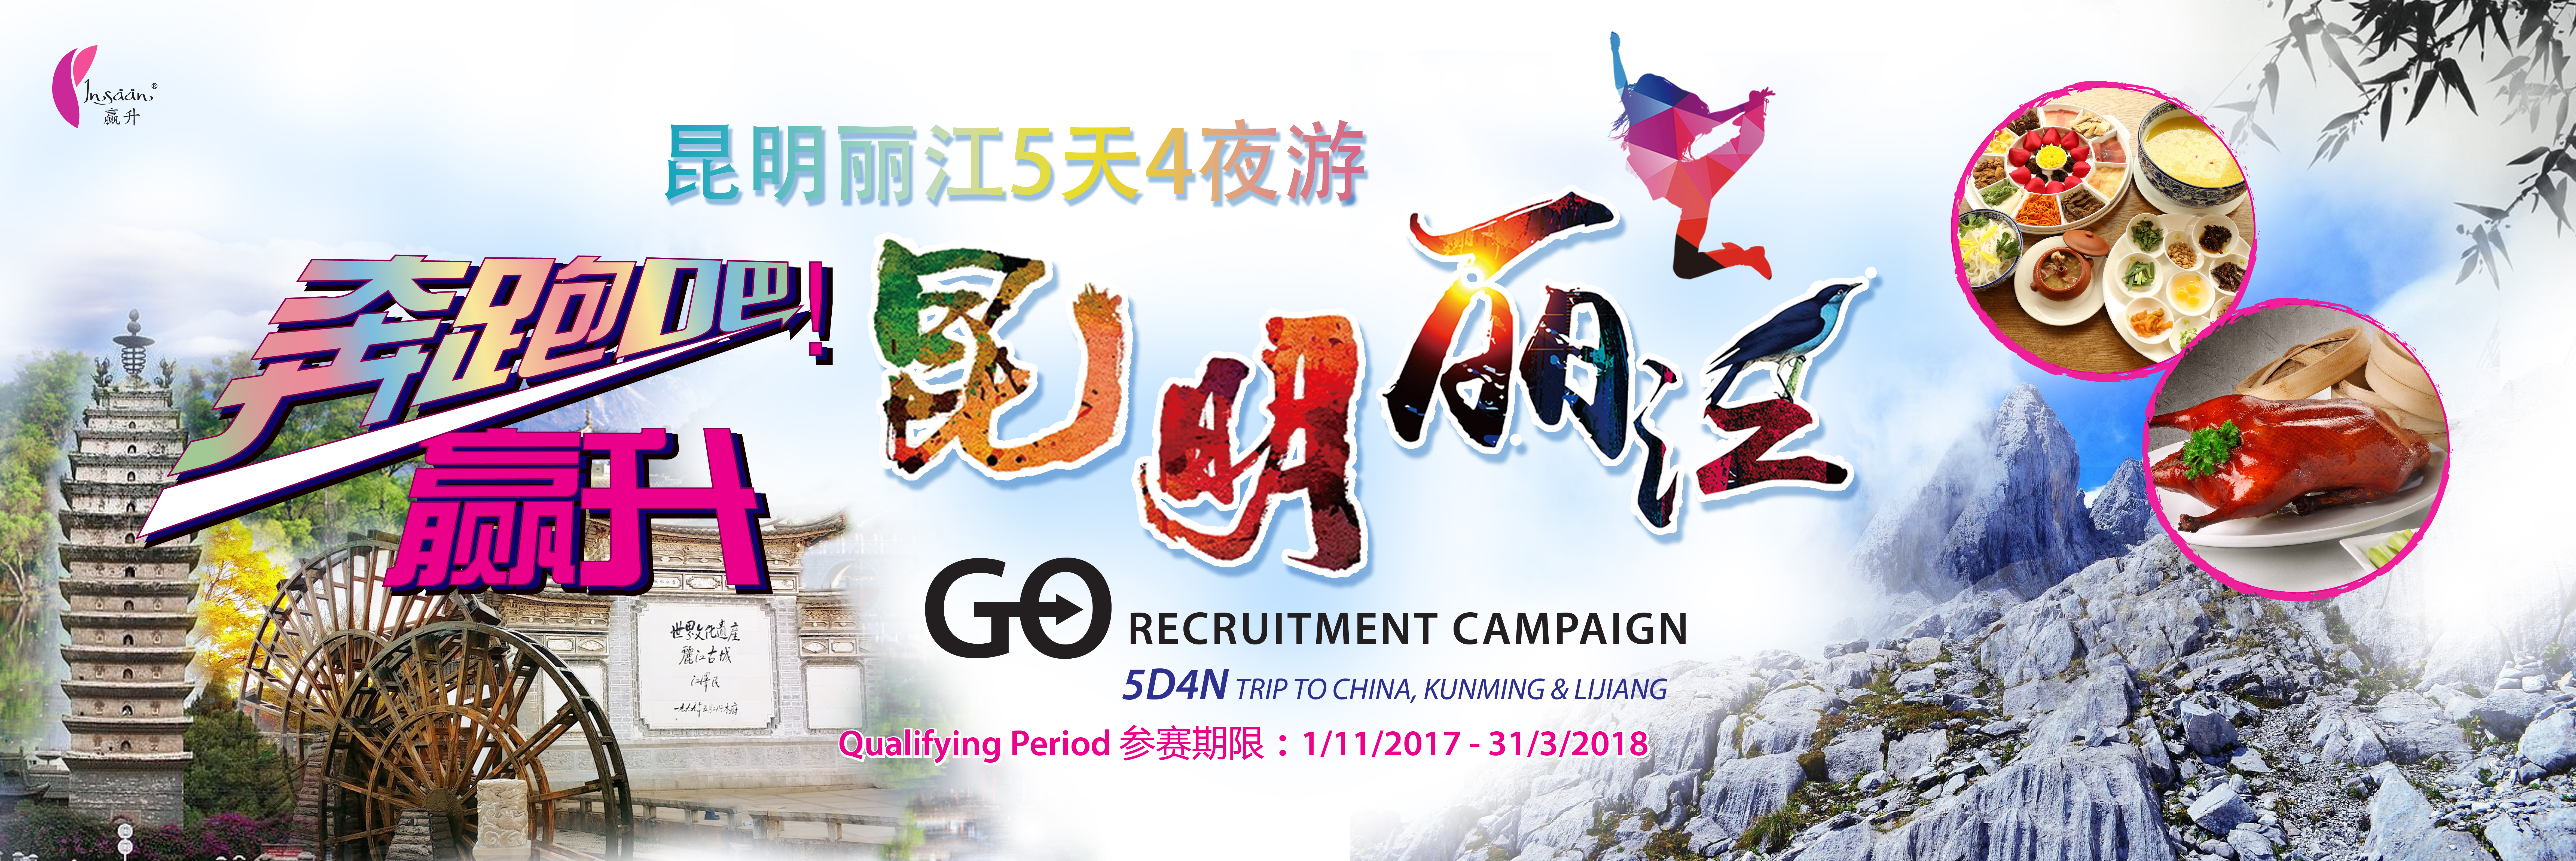 GO RECRUITMENT CAMPAIGN TRIP